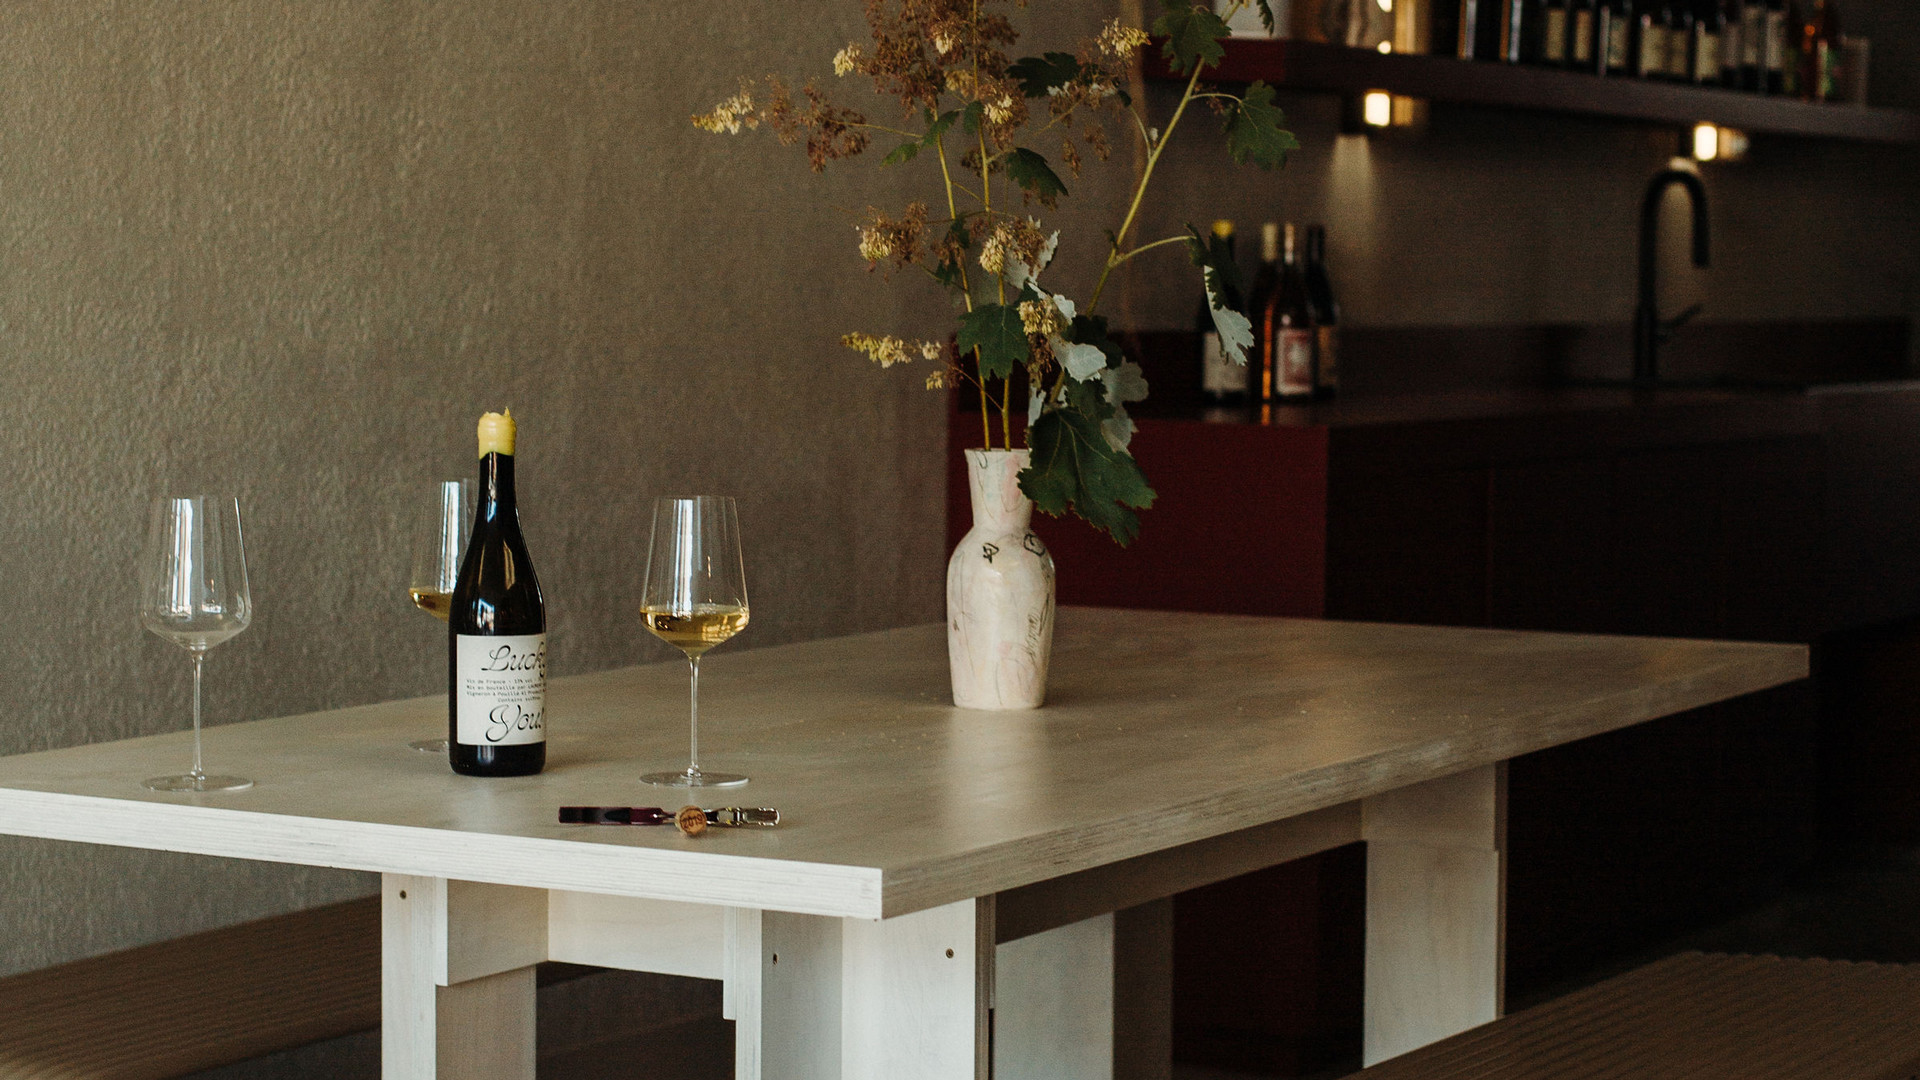 Trinity Bellwoods neighbourhood guide   Wine and two glasses at Grape Glass